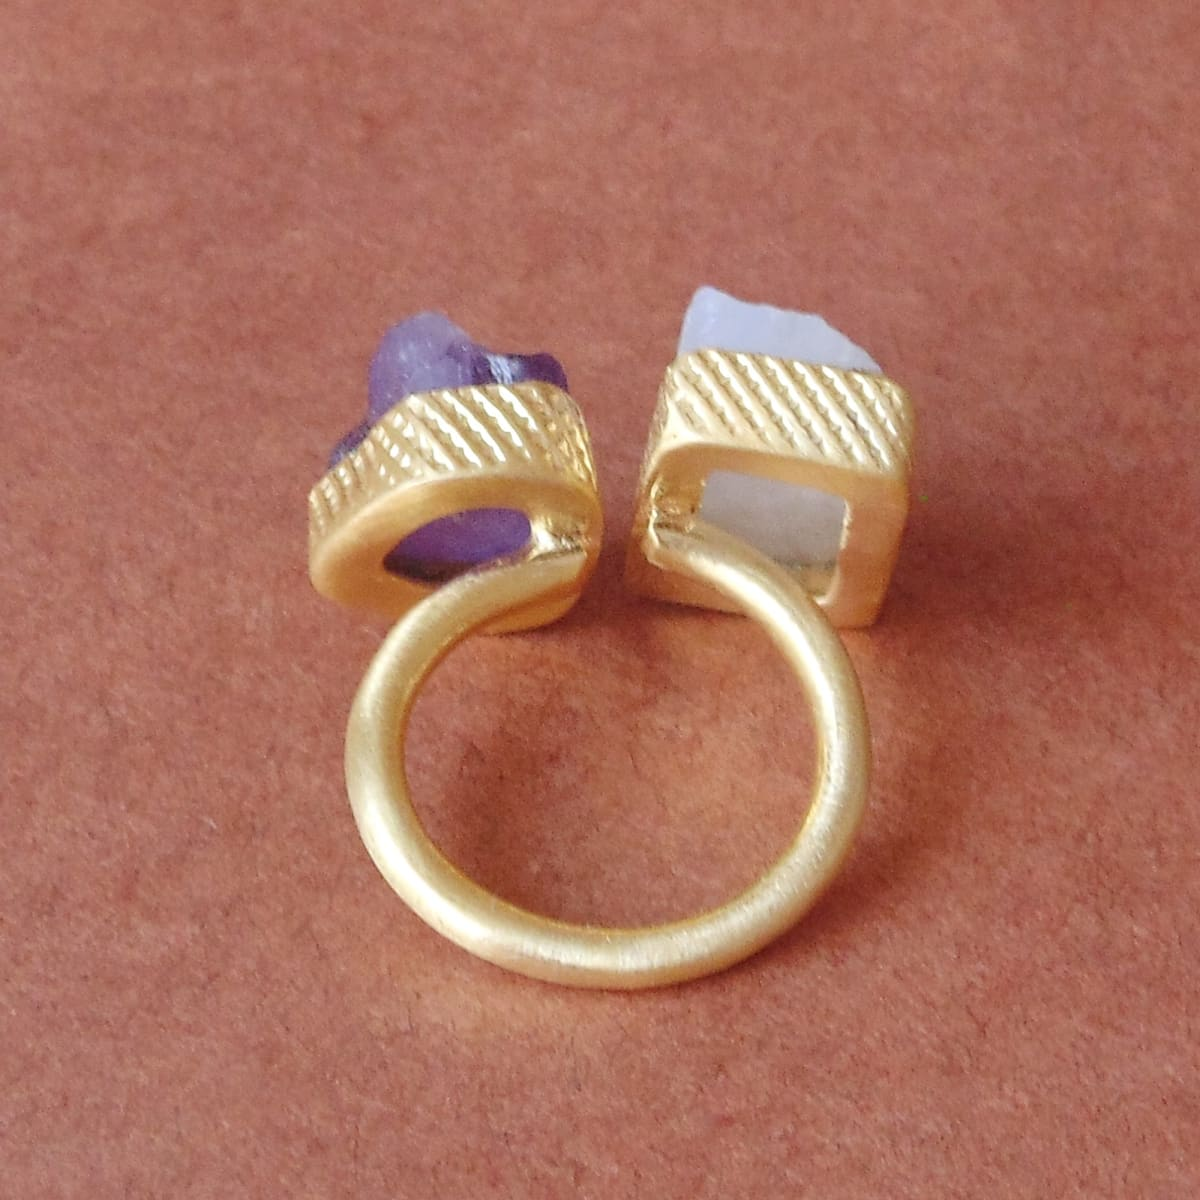 Attractive Style Real Rainbow Moonstone And Amethyst Birthstone Adjustable Ring - by Bhagat Jewels